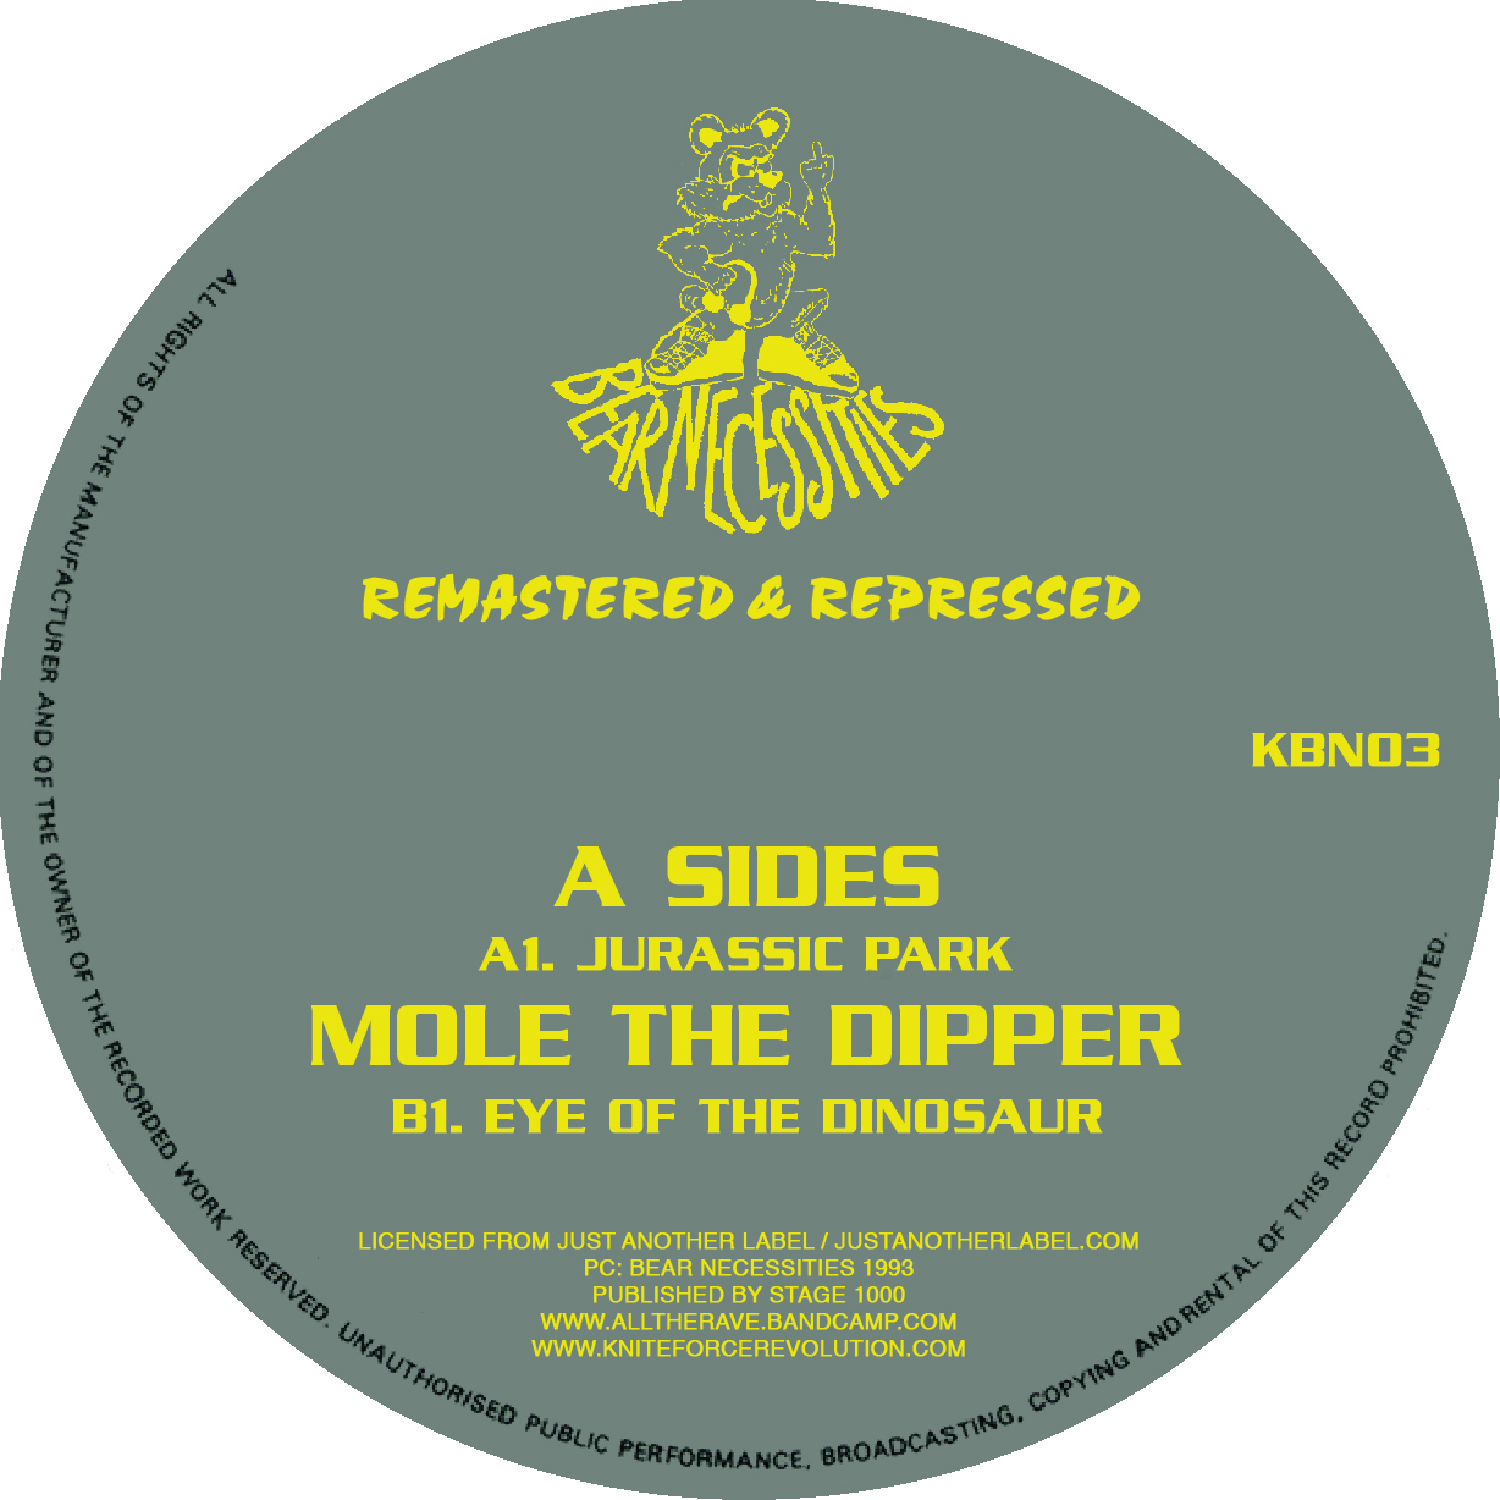 "[KBN03] A-Sides / Mole The DIpper - Jurassic Park / Eye Of The Dinosaur EP (12"" Vinyl + Digital)"